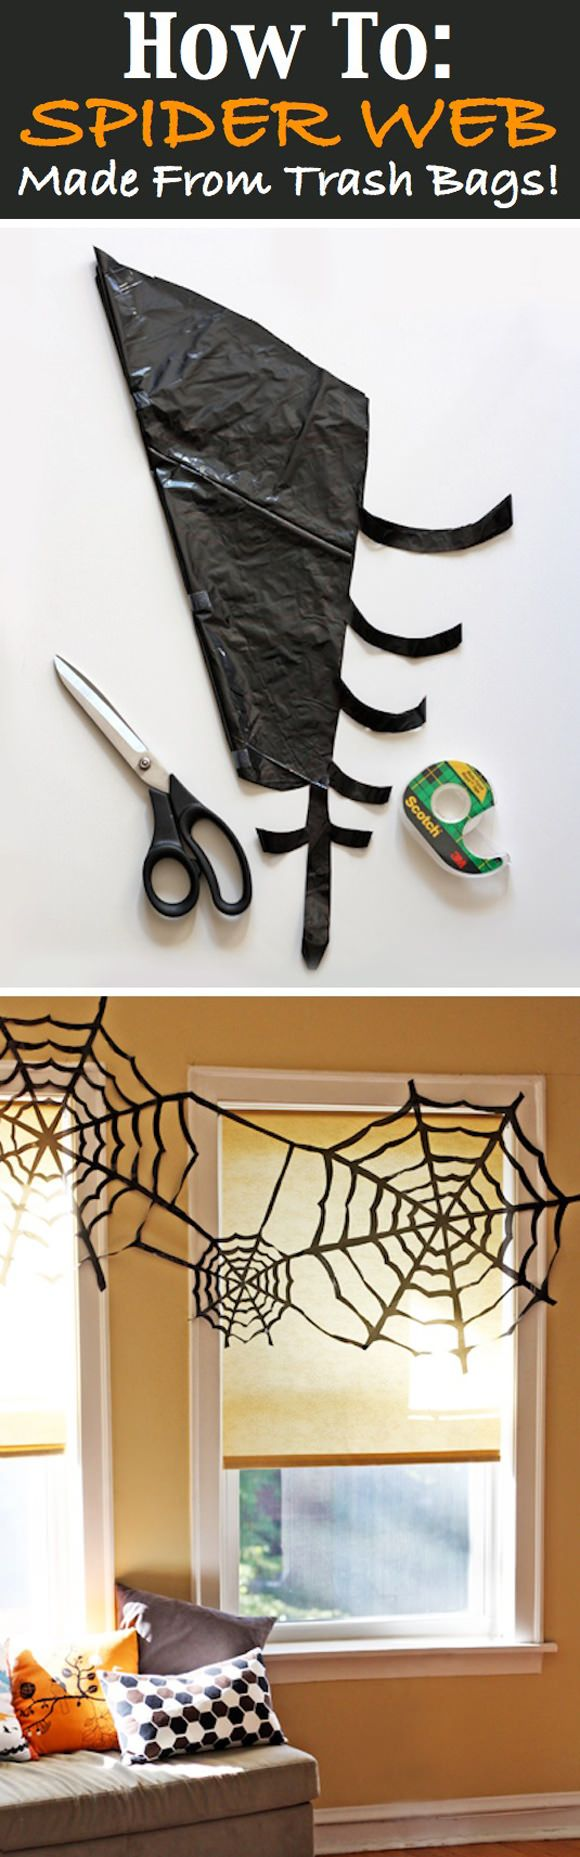 5 Spooky Spider Web Projects for Halloween